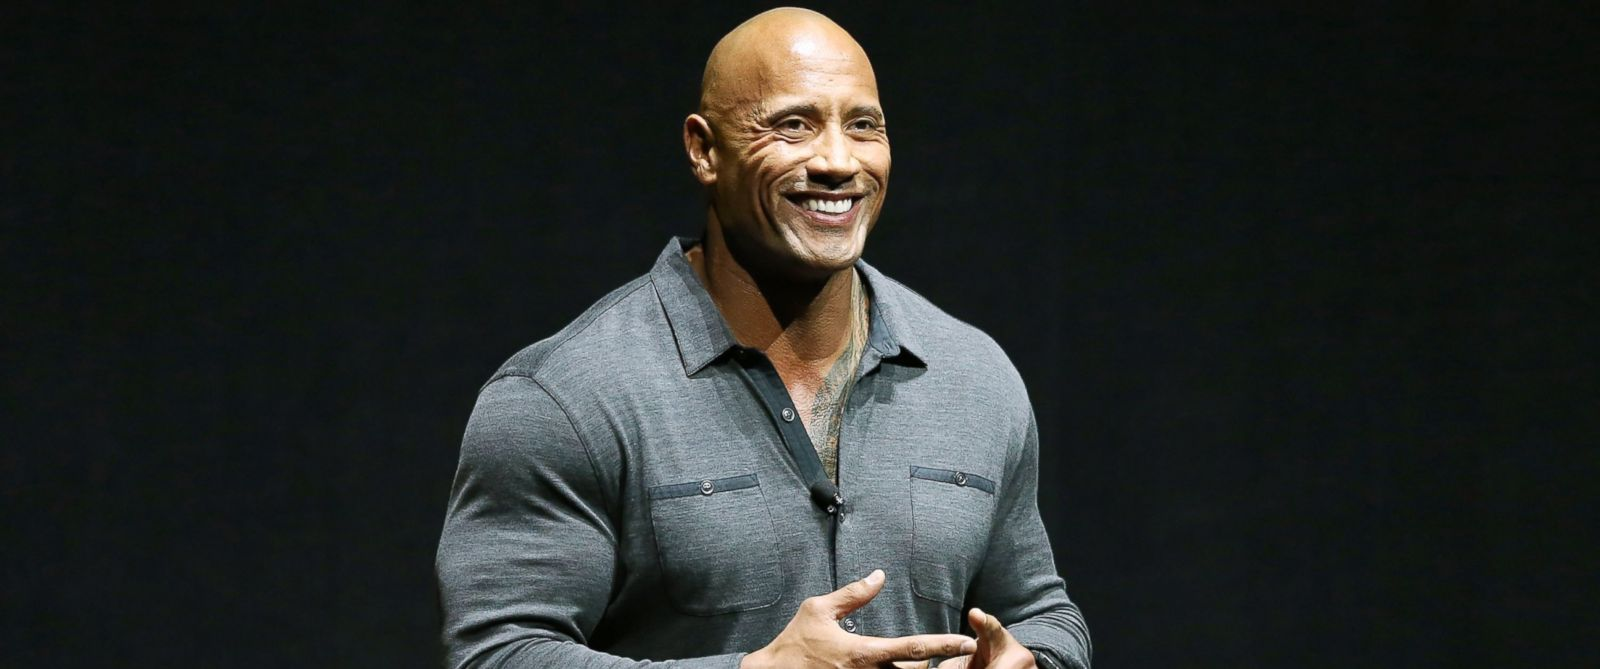 PHOTO: Dwayne Johnson speaks onstage at the Paramount Studios presentation Cinemacon 2014 held at The Colosseum at Caesars Palace, March 24, 2014, in Las Vegas.